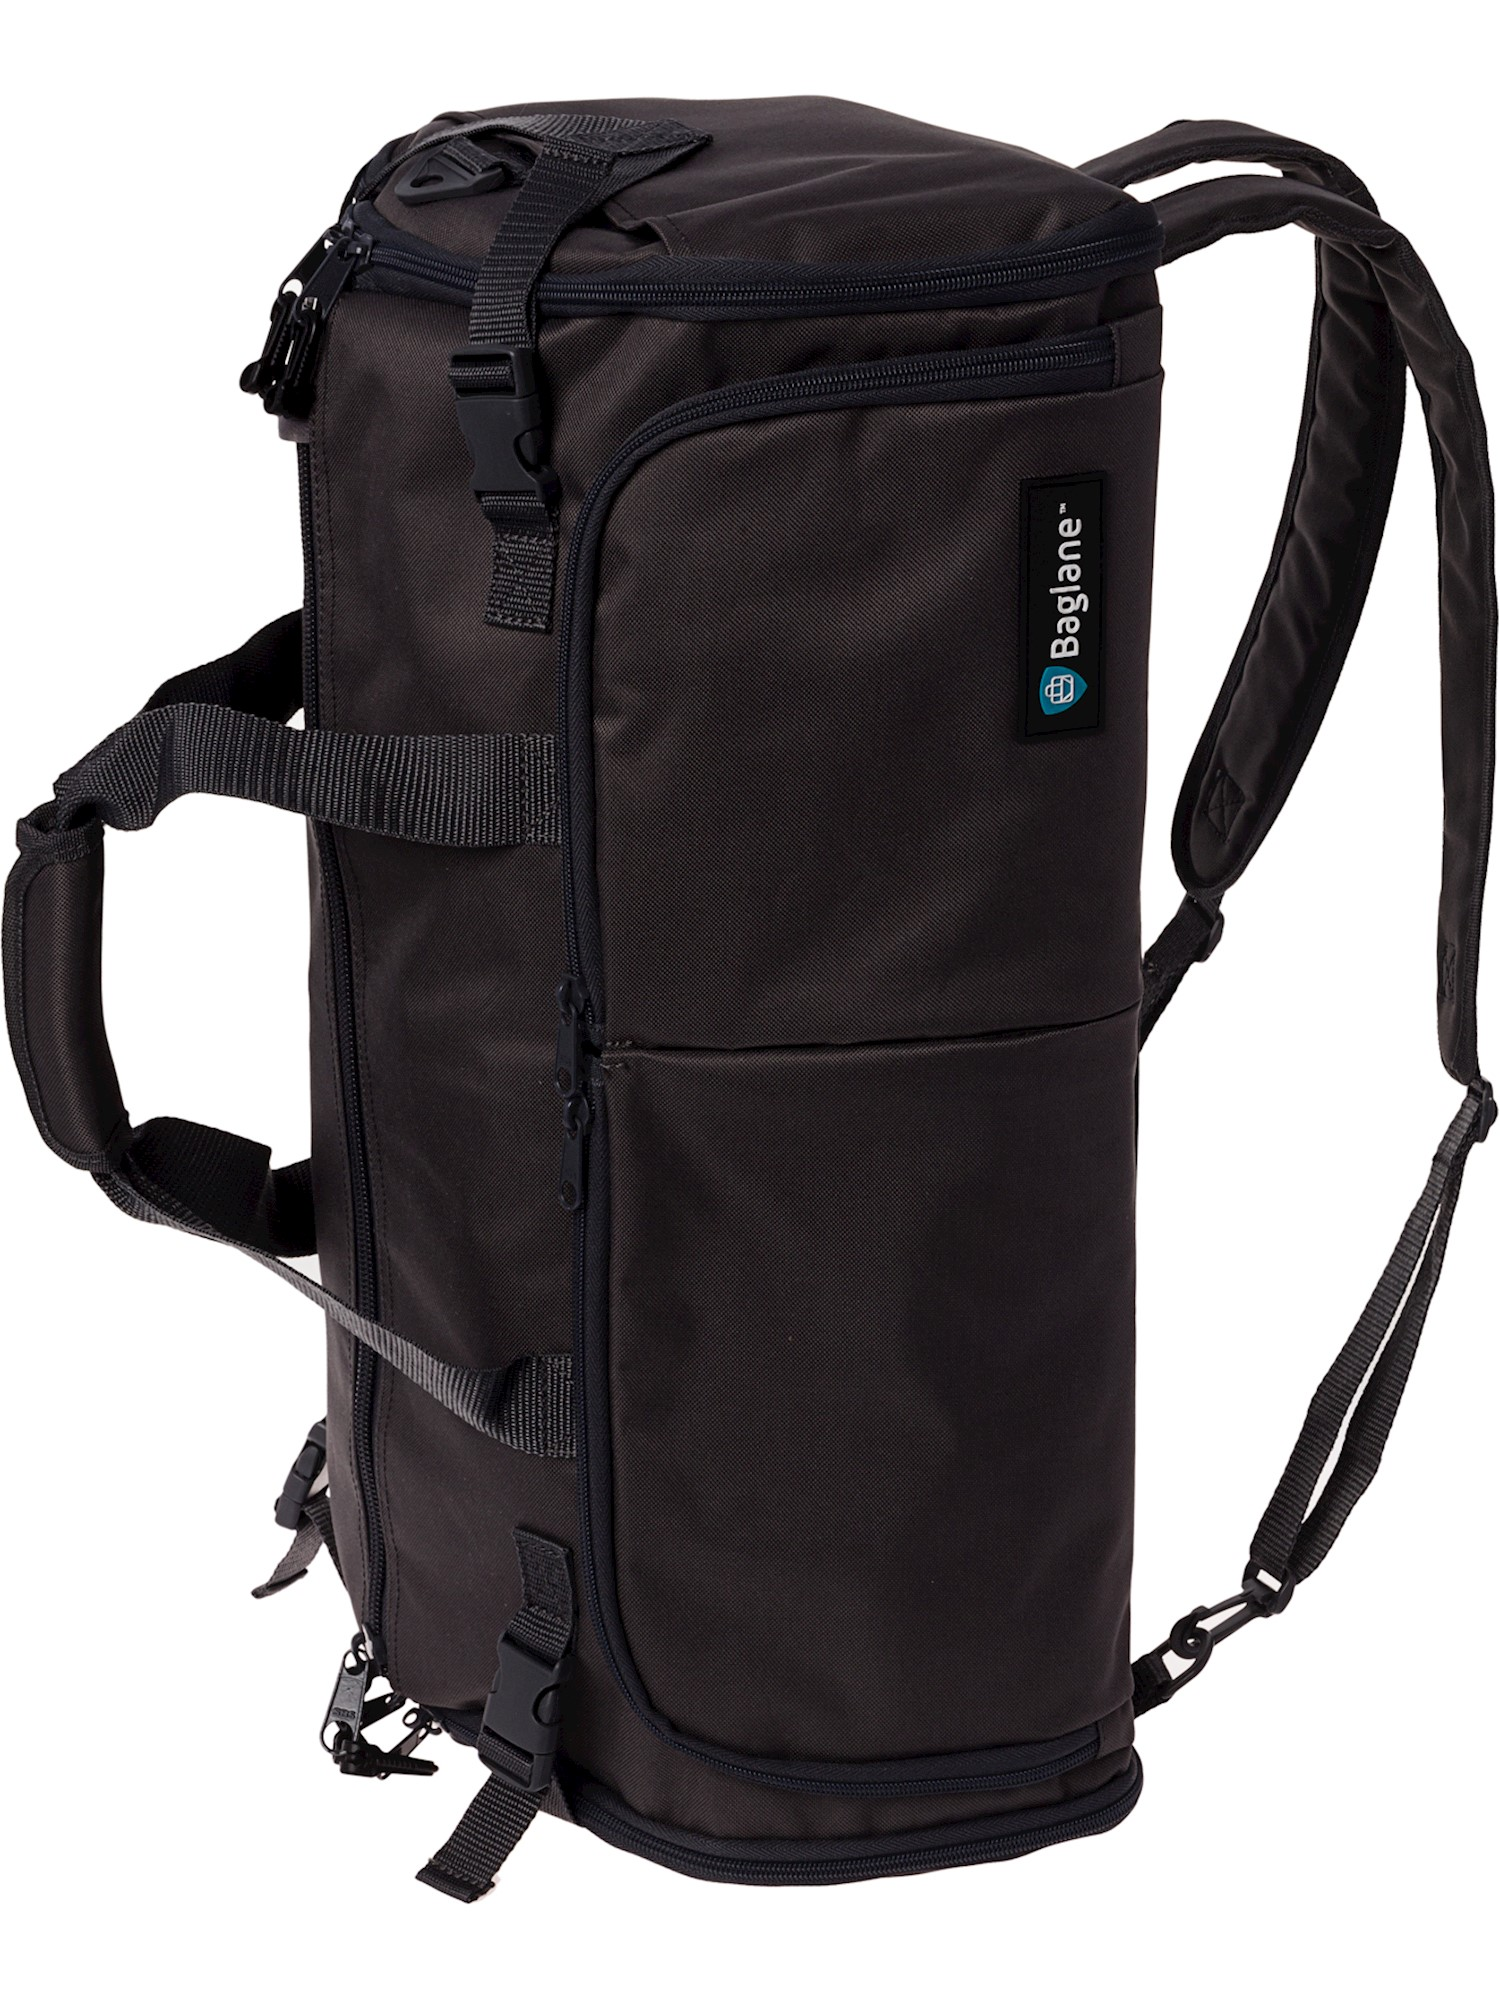 559f95911a5e Jet Set Convertible Travel Backpack | The Shred Centre